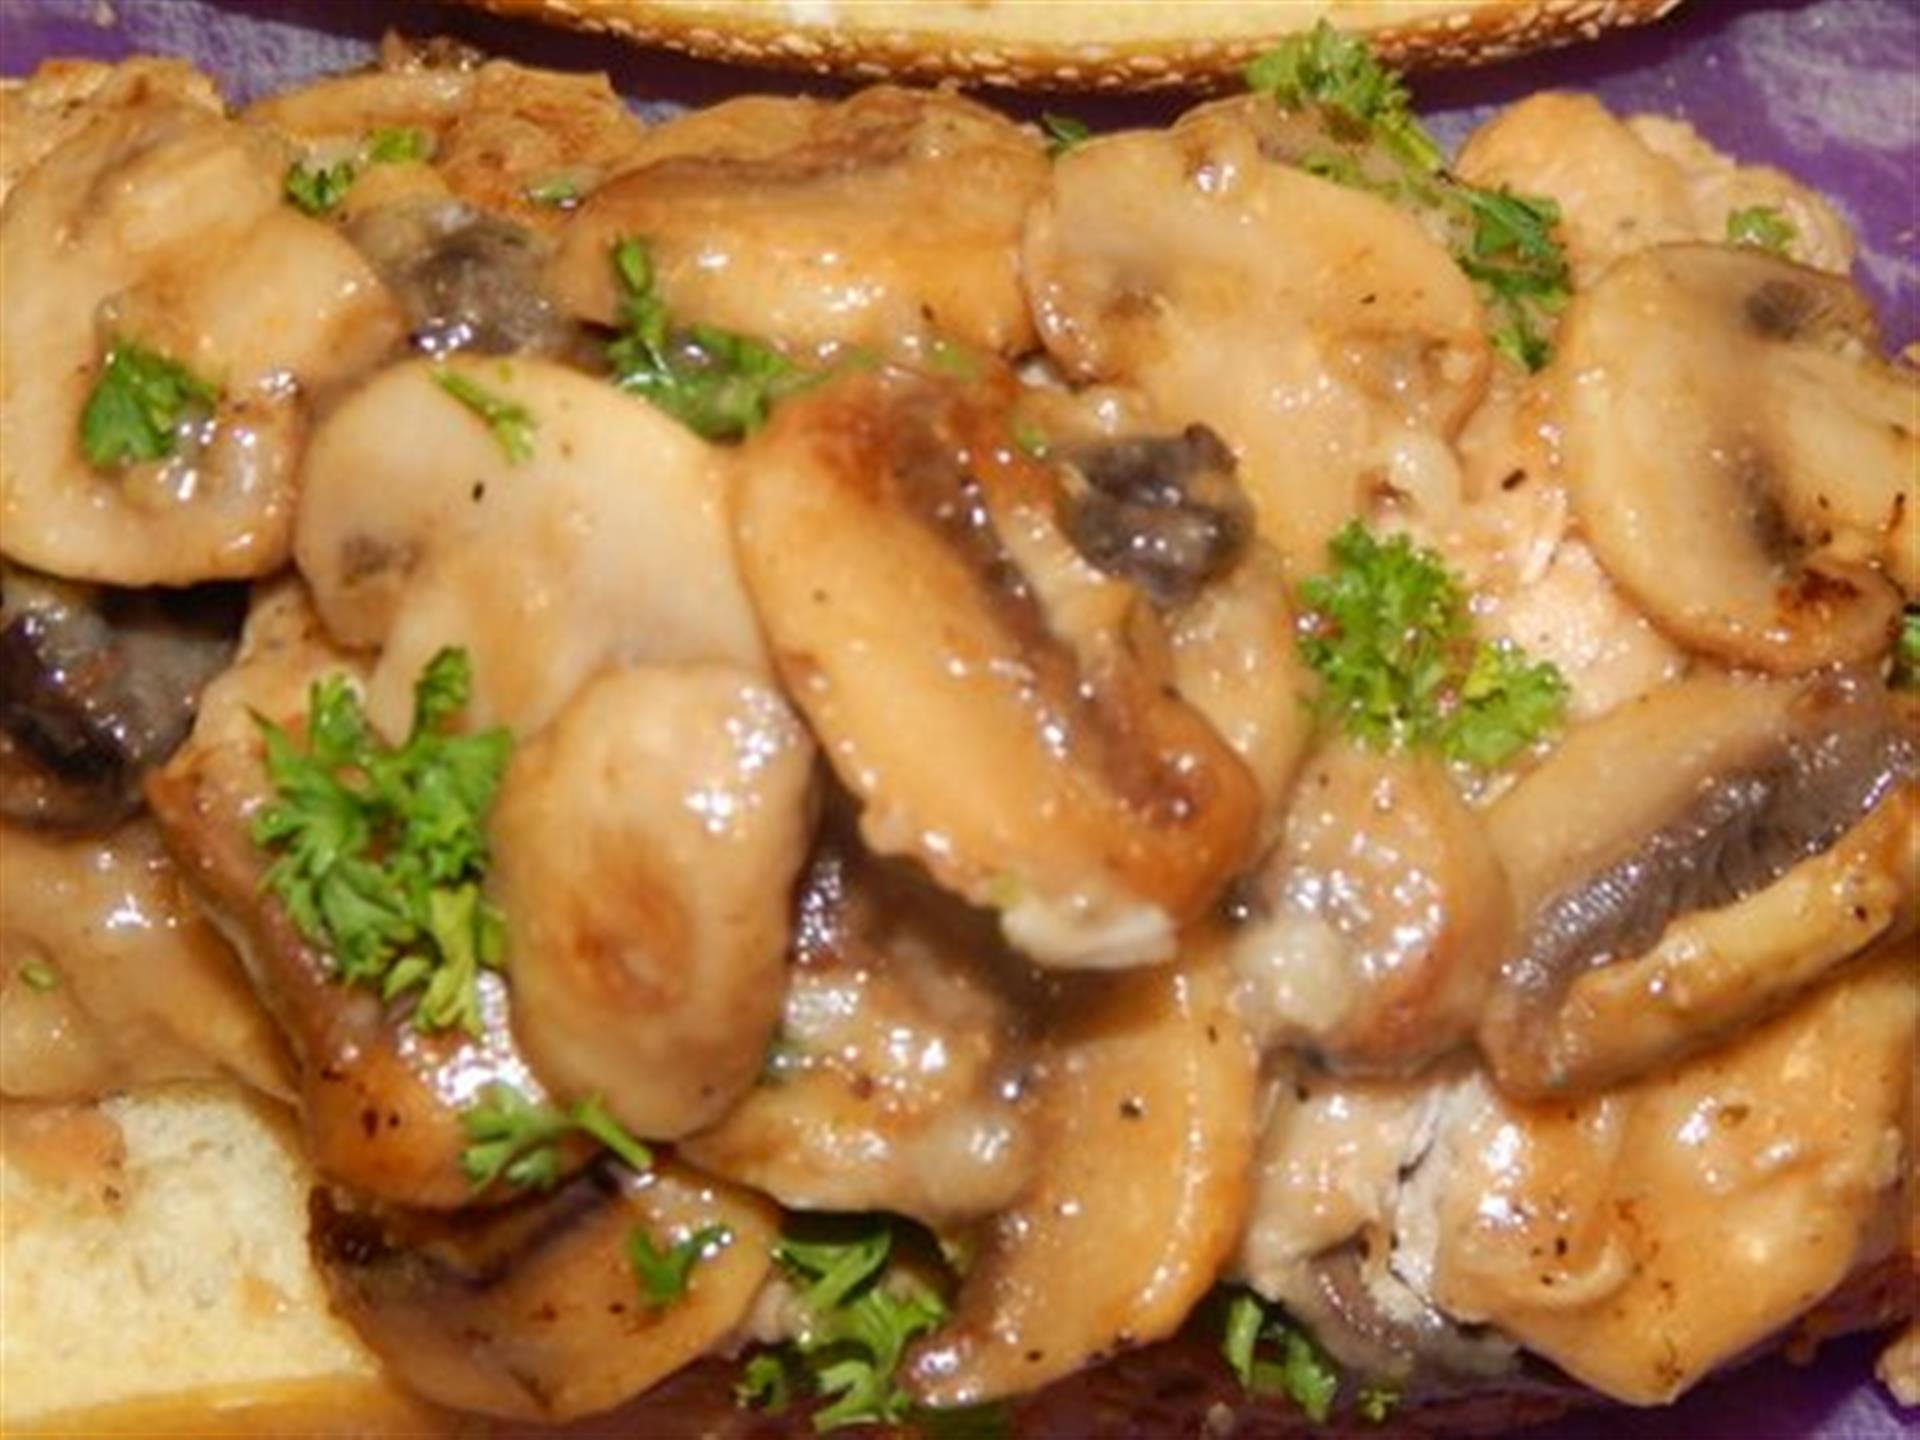 entree topped with mushrooms